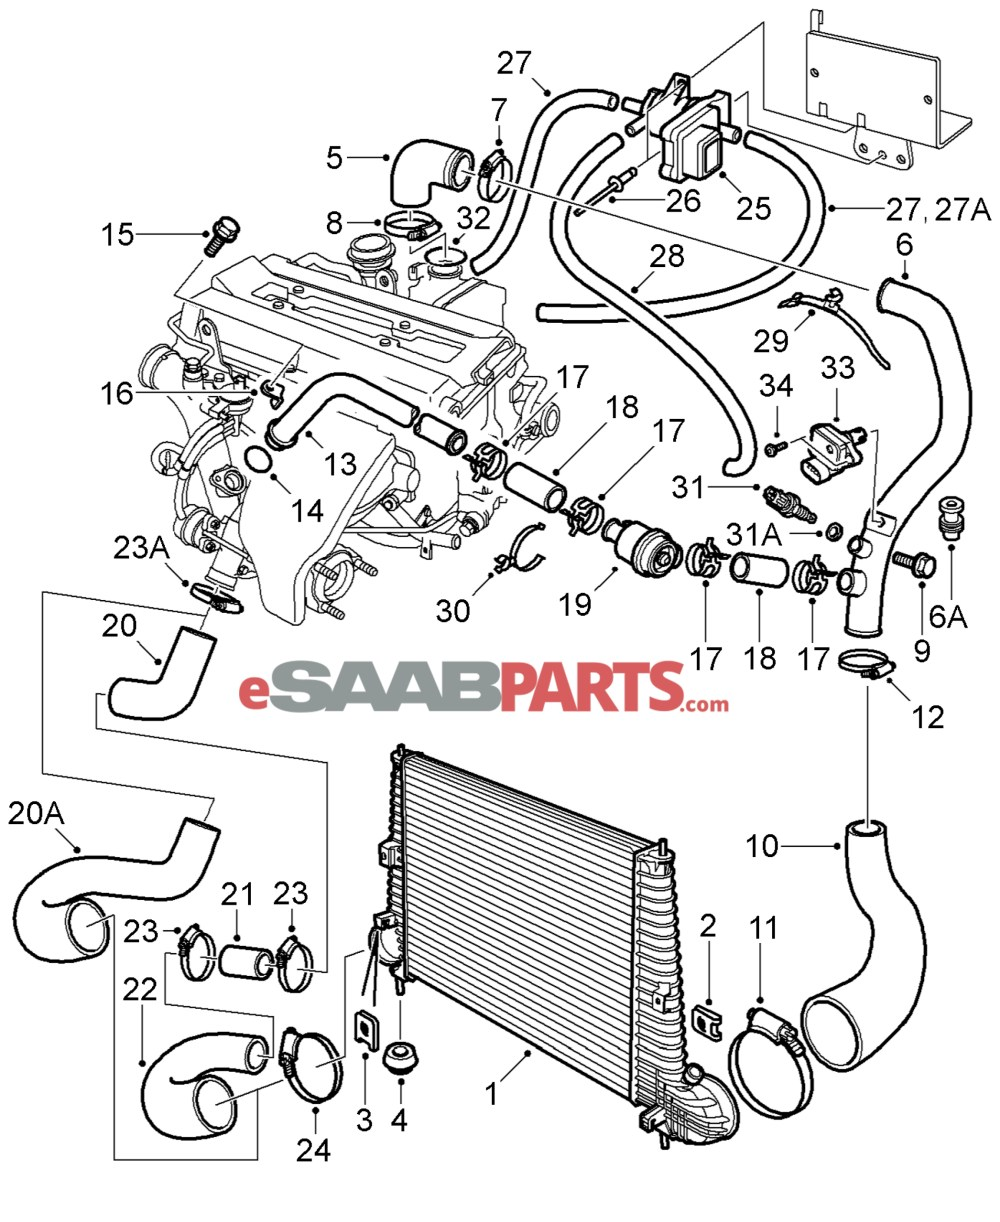 medium resolution of wiring diagram further 2005 saab 9 3 aero vacuum sensor also 2002 5 saab 9 5 engine diagram 2002 saab 9 5 vacuum diagram saab 900